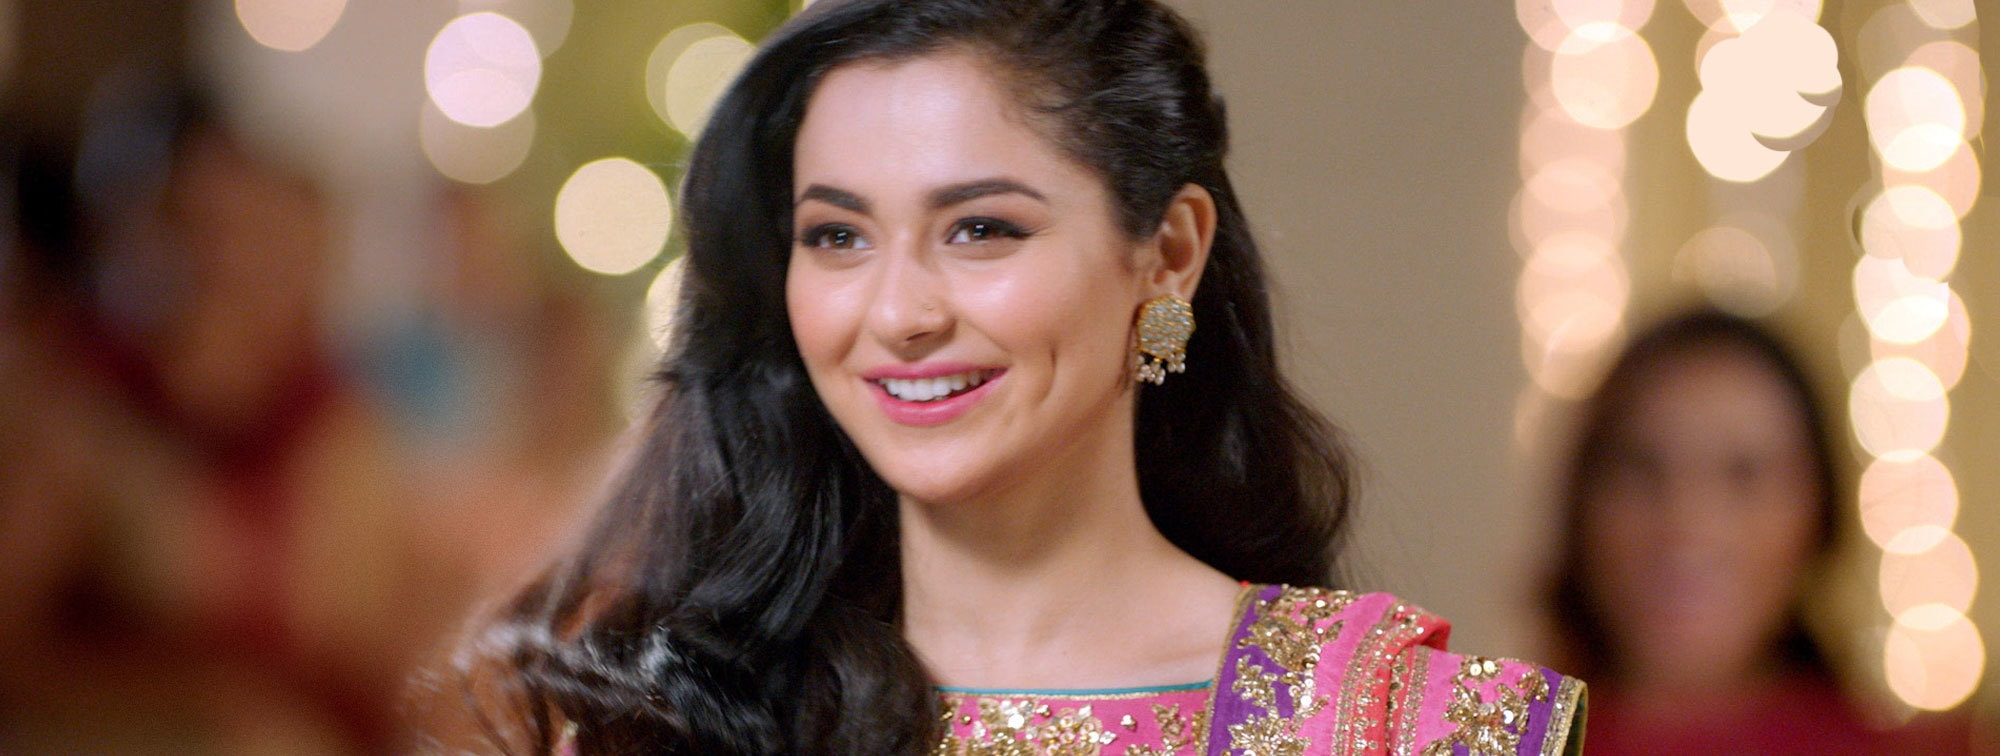 Dimple Girl Wallpaper Rising Talent Hania Aamir Won T Be Intimidated By Anyone